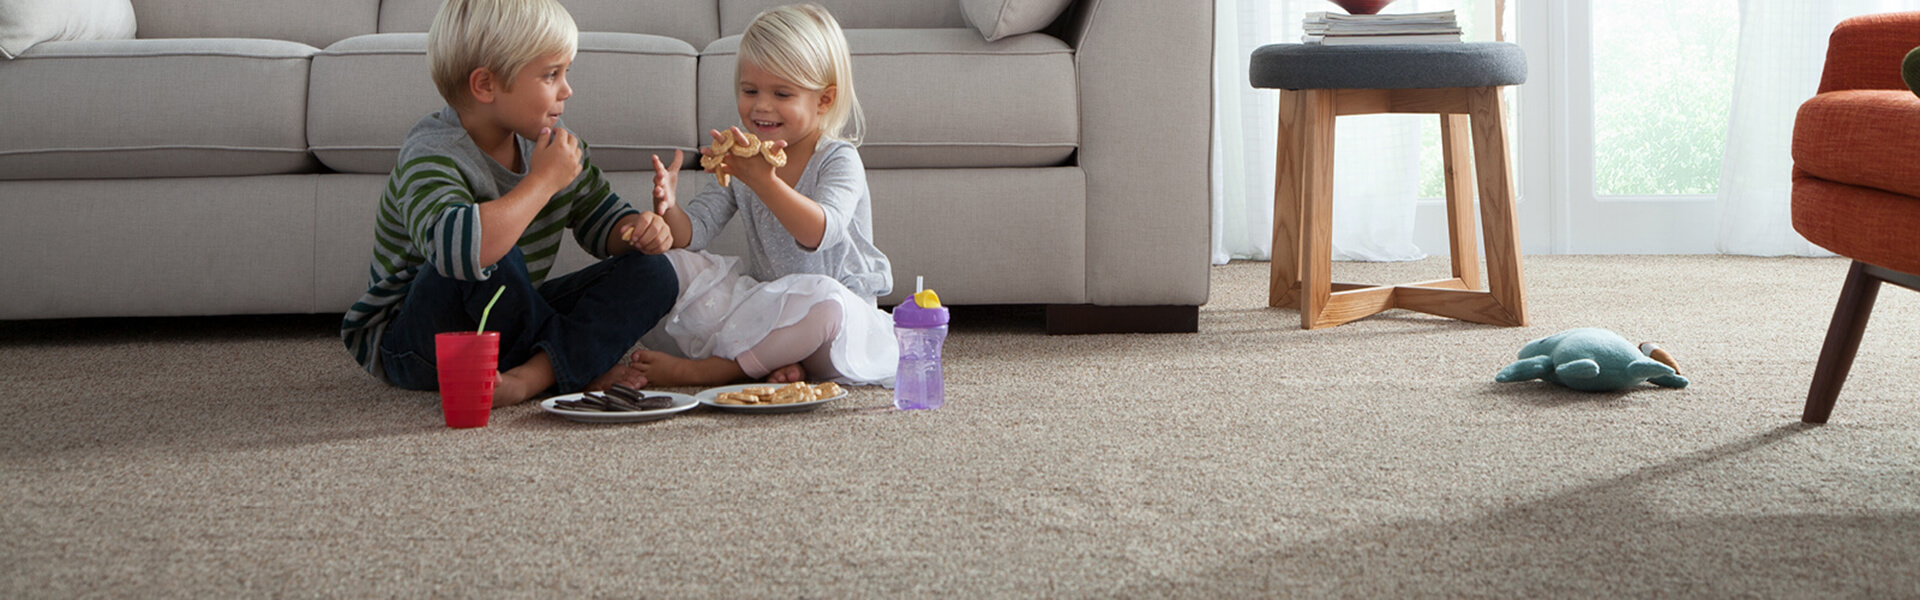 The Best Flooring in a Home with Kids